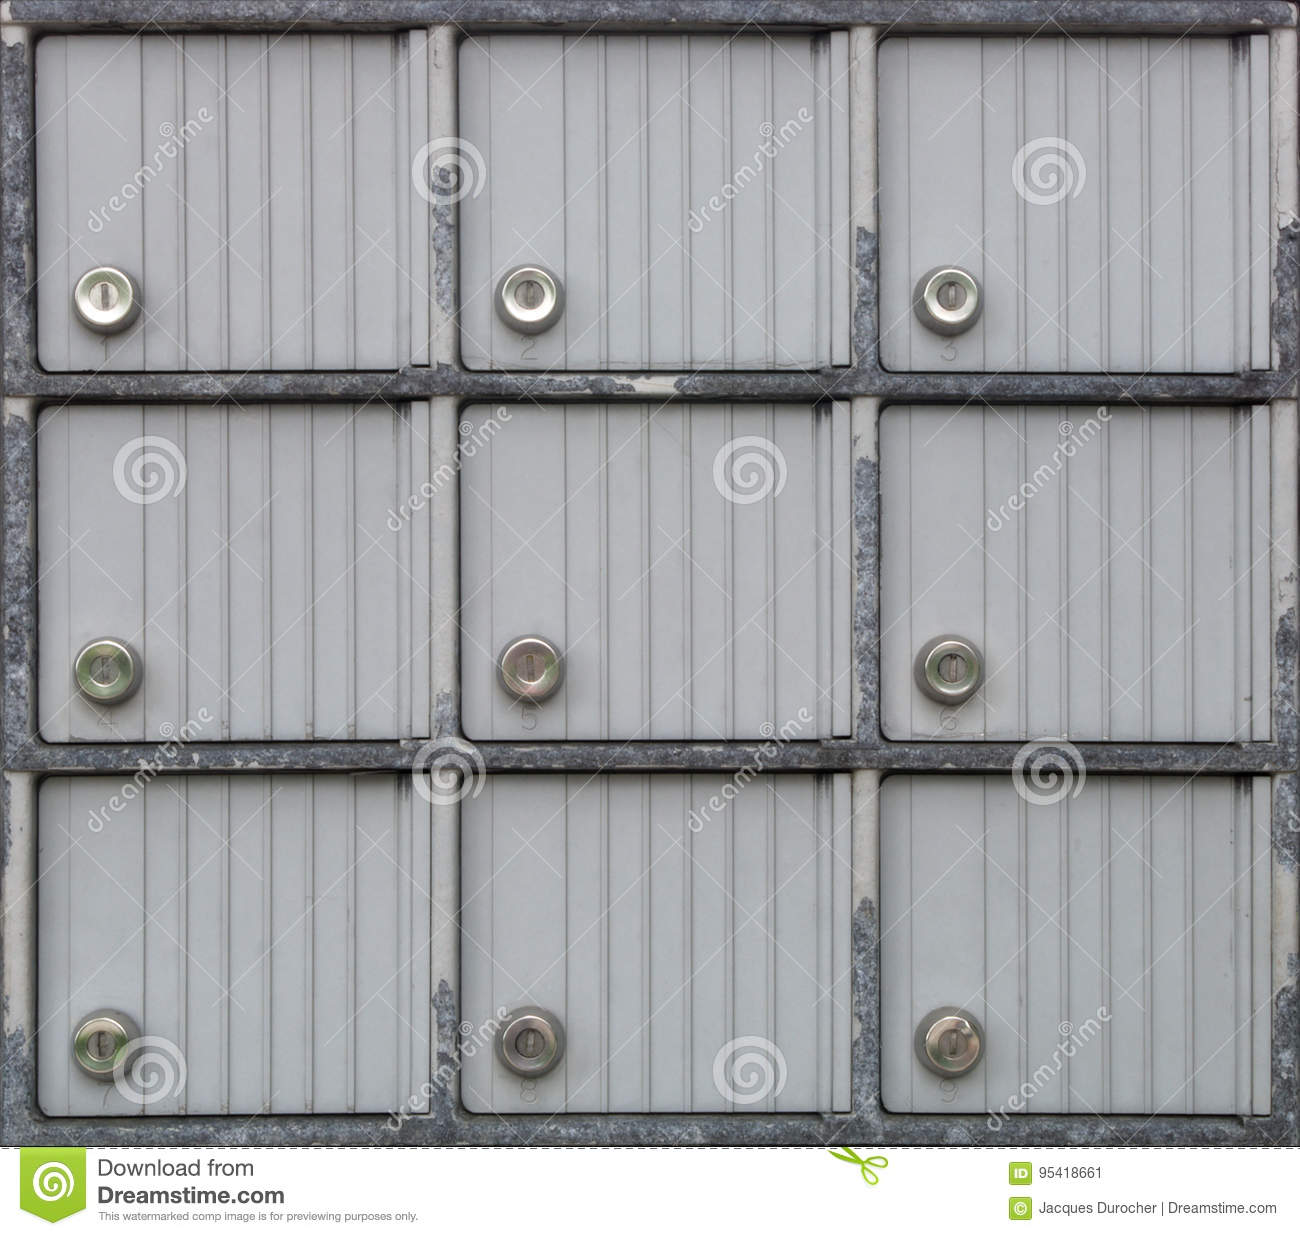 Mailbox Lock Many Metal Doors Safe Boxes Stock Image Image Of Closed Mail 95418661